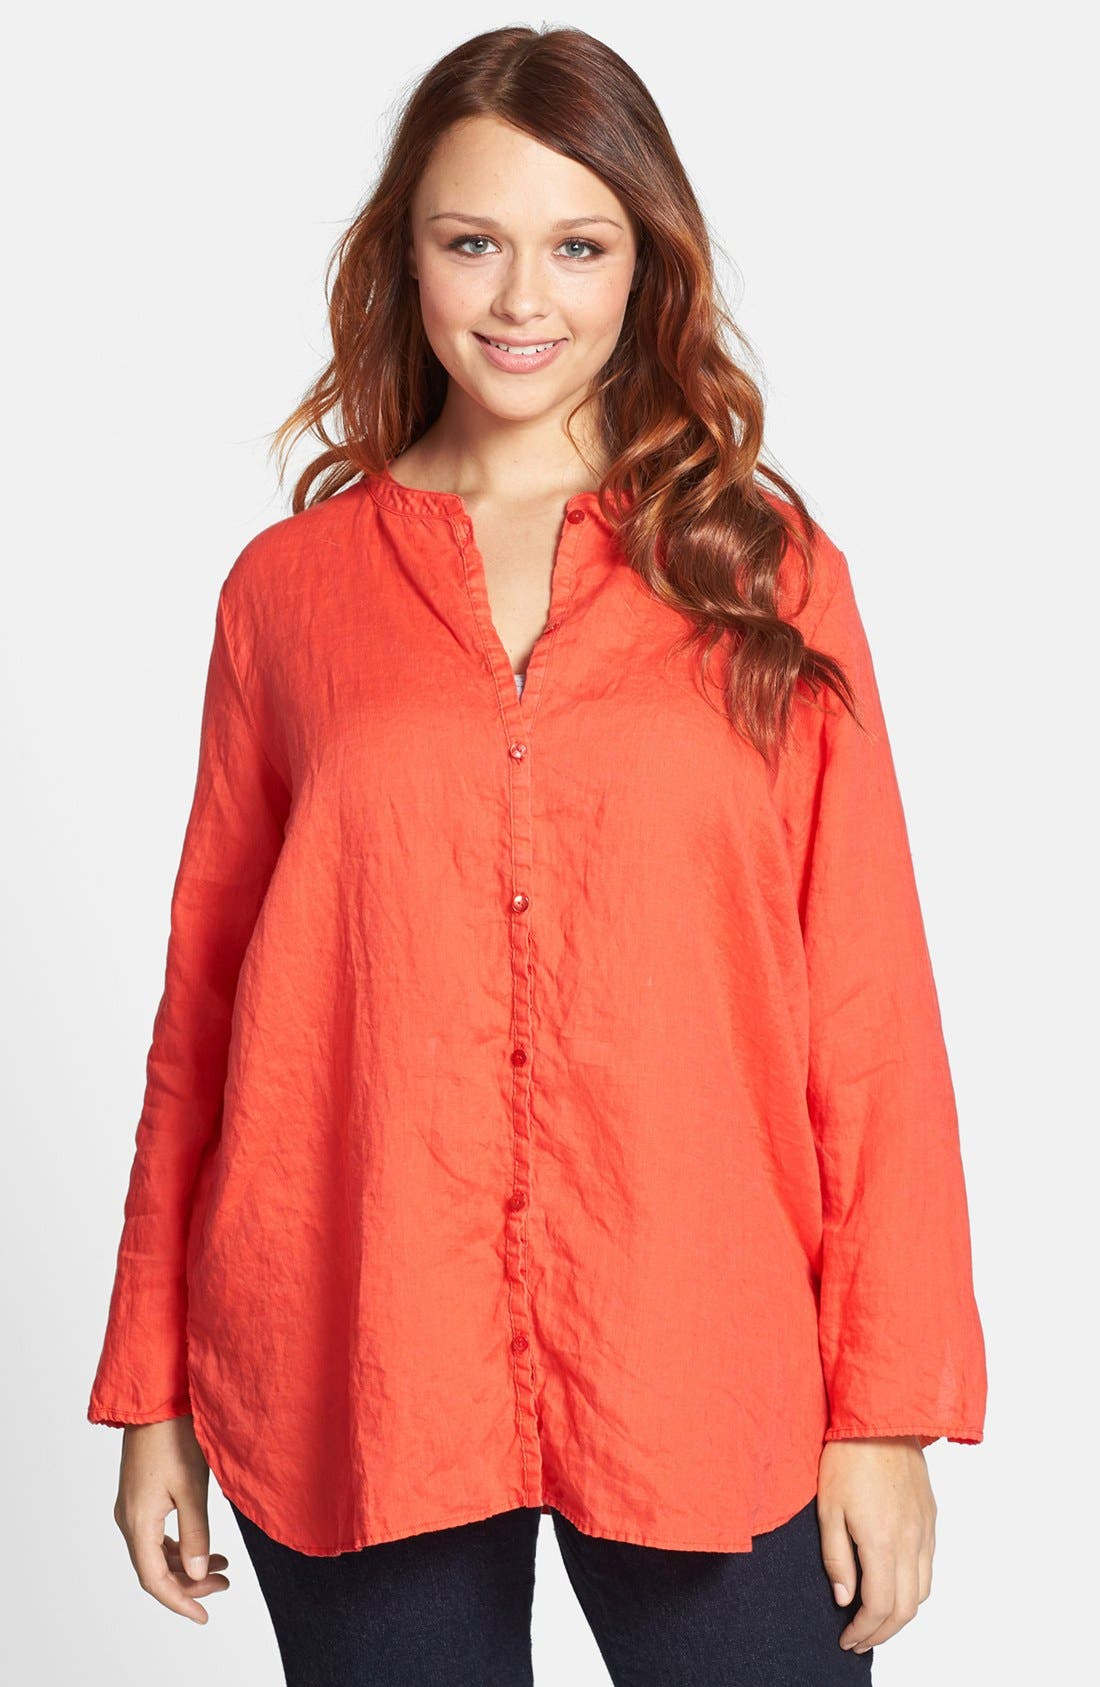 Alternate Image 1 Selected - Eileen Fisher Mandarin Collar Linen Shirt (Plus Size)